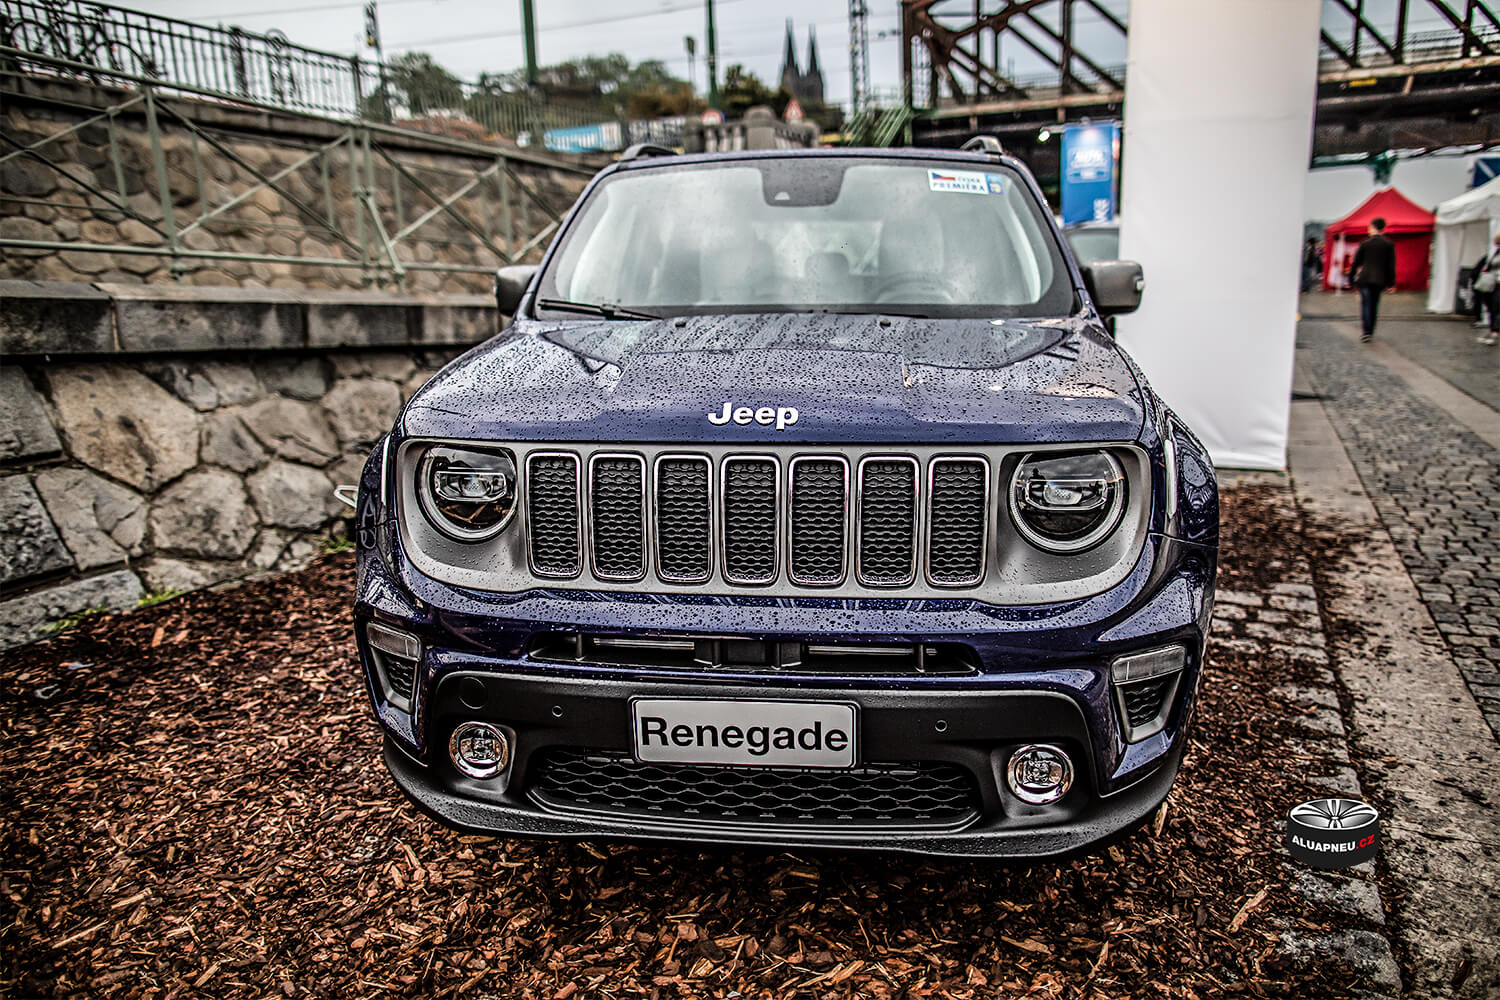 Alu kola Jeep Renegade